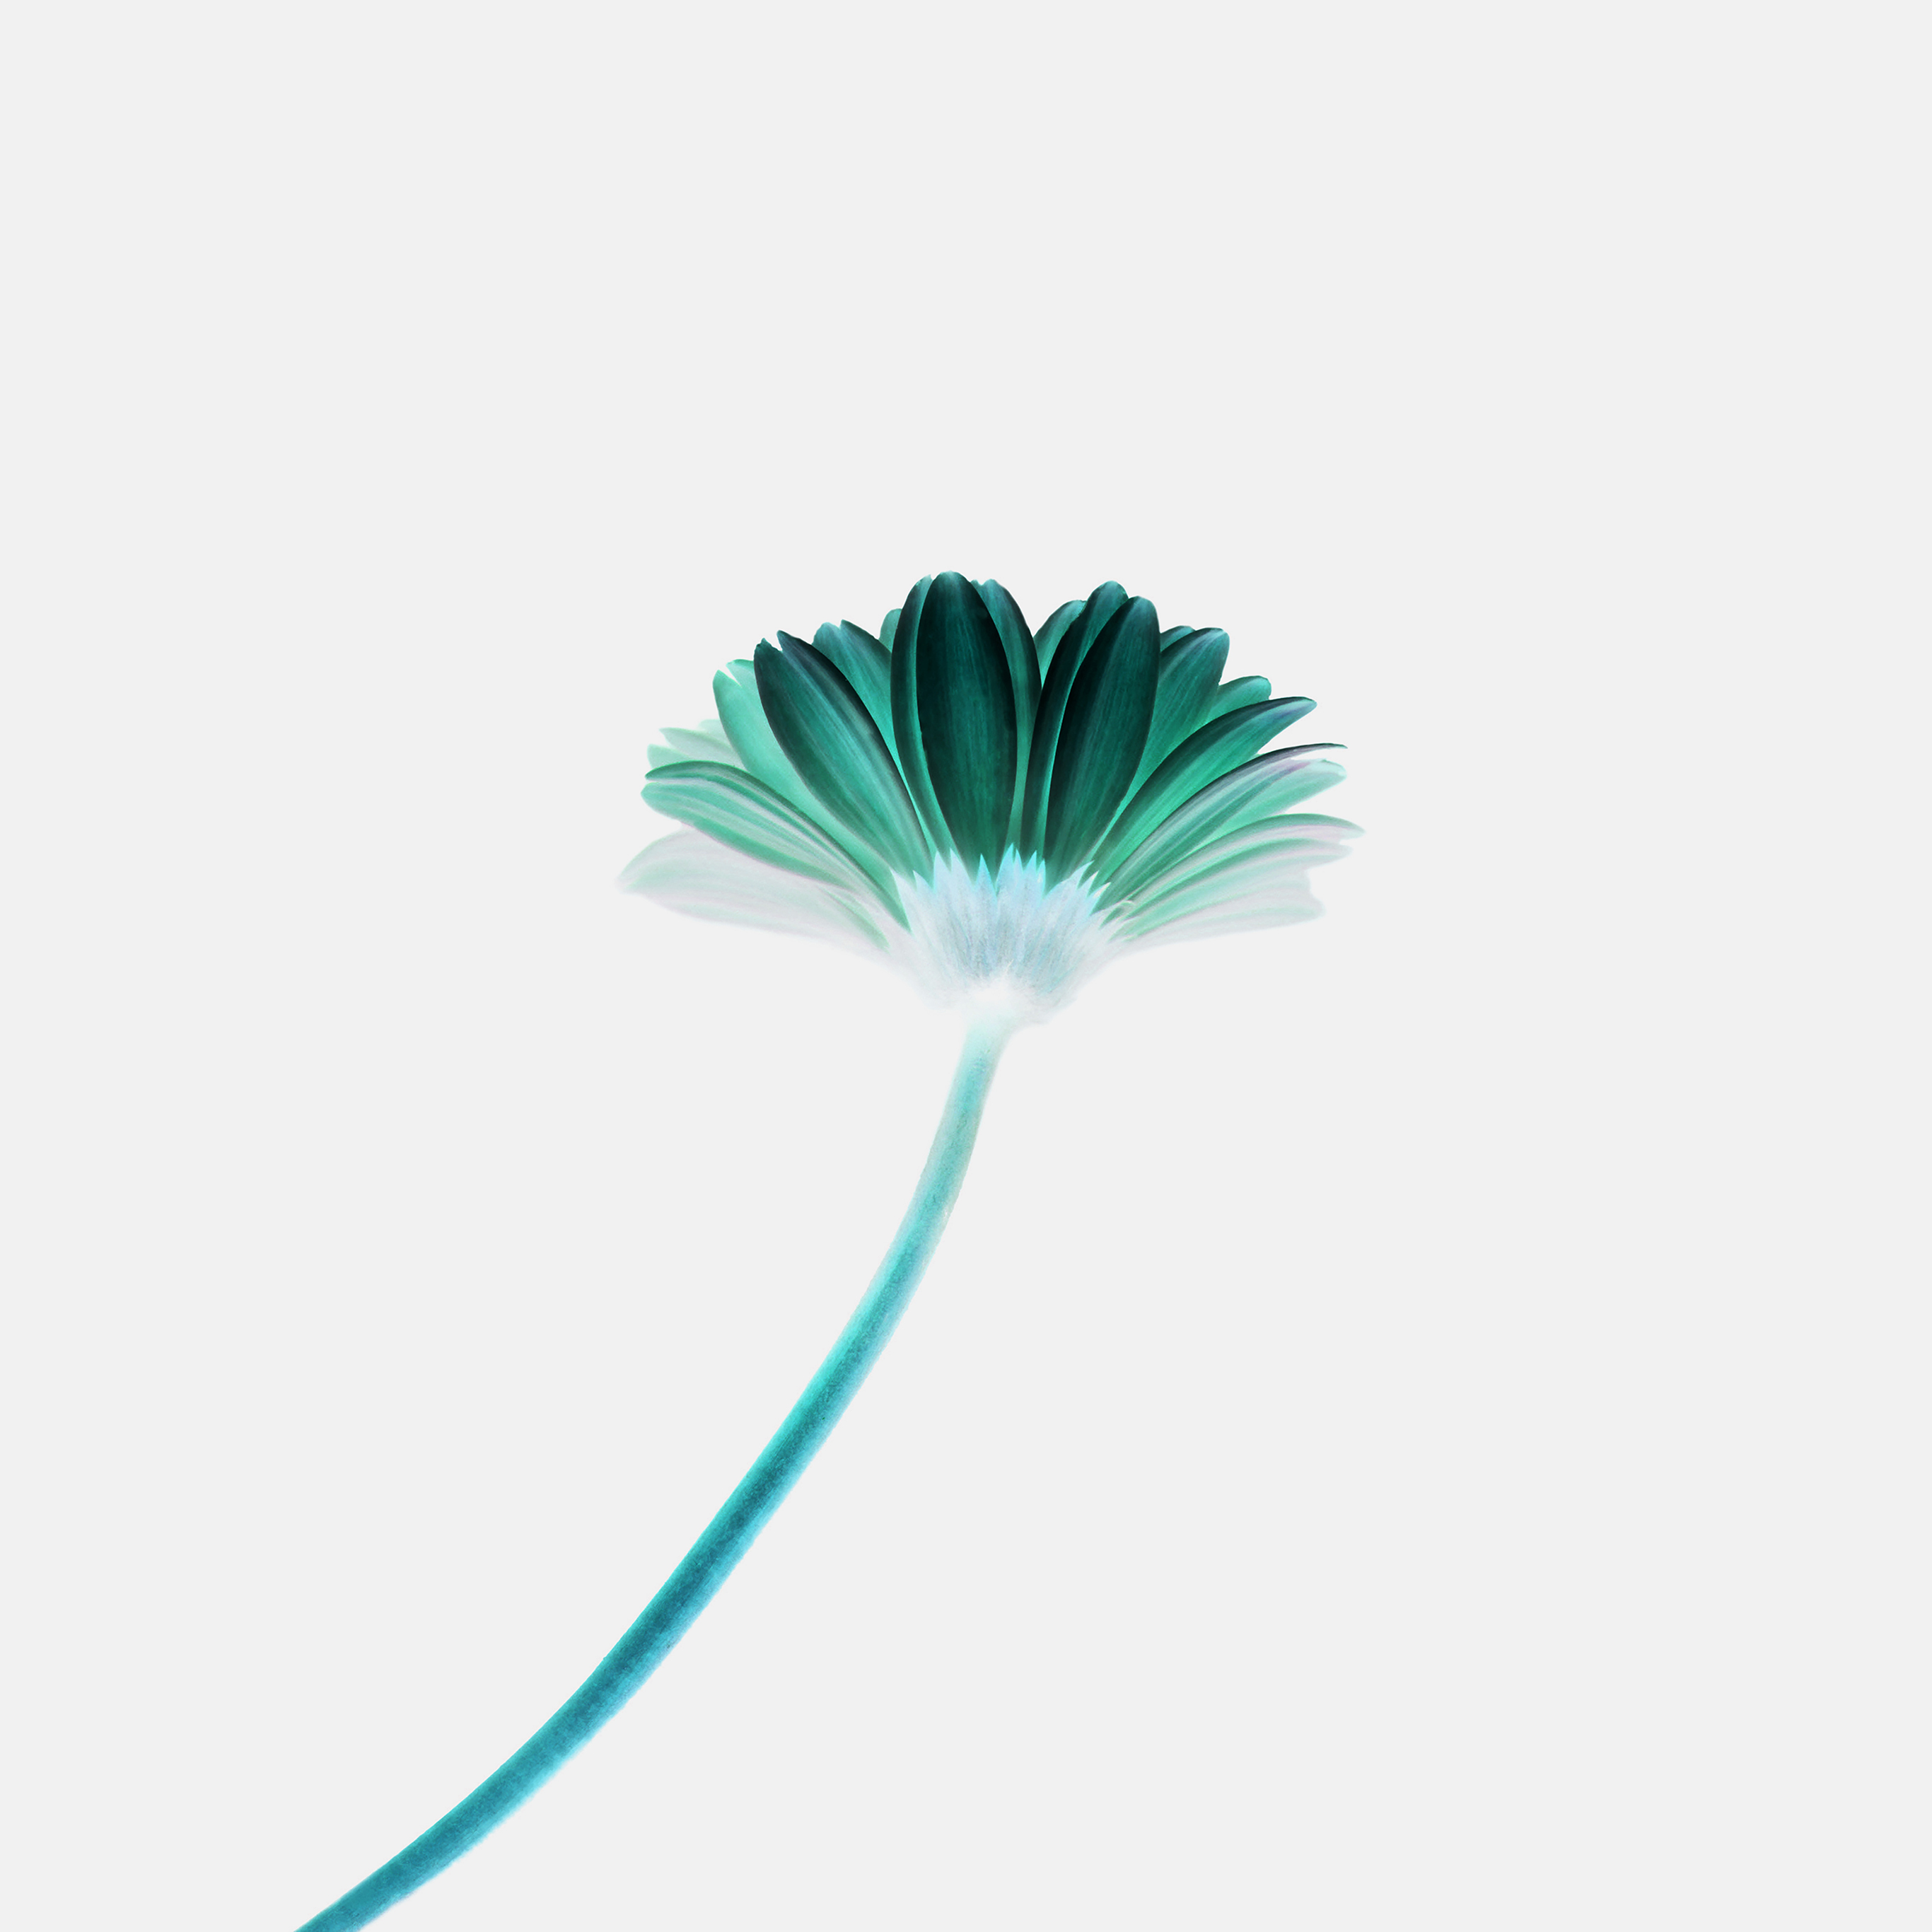 Mk68 Lonely Flower White Green Simple Minimal Nature Papers Co